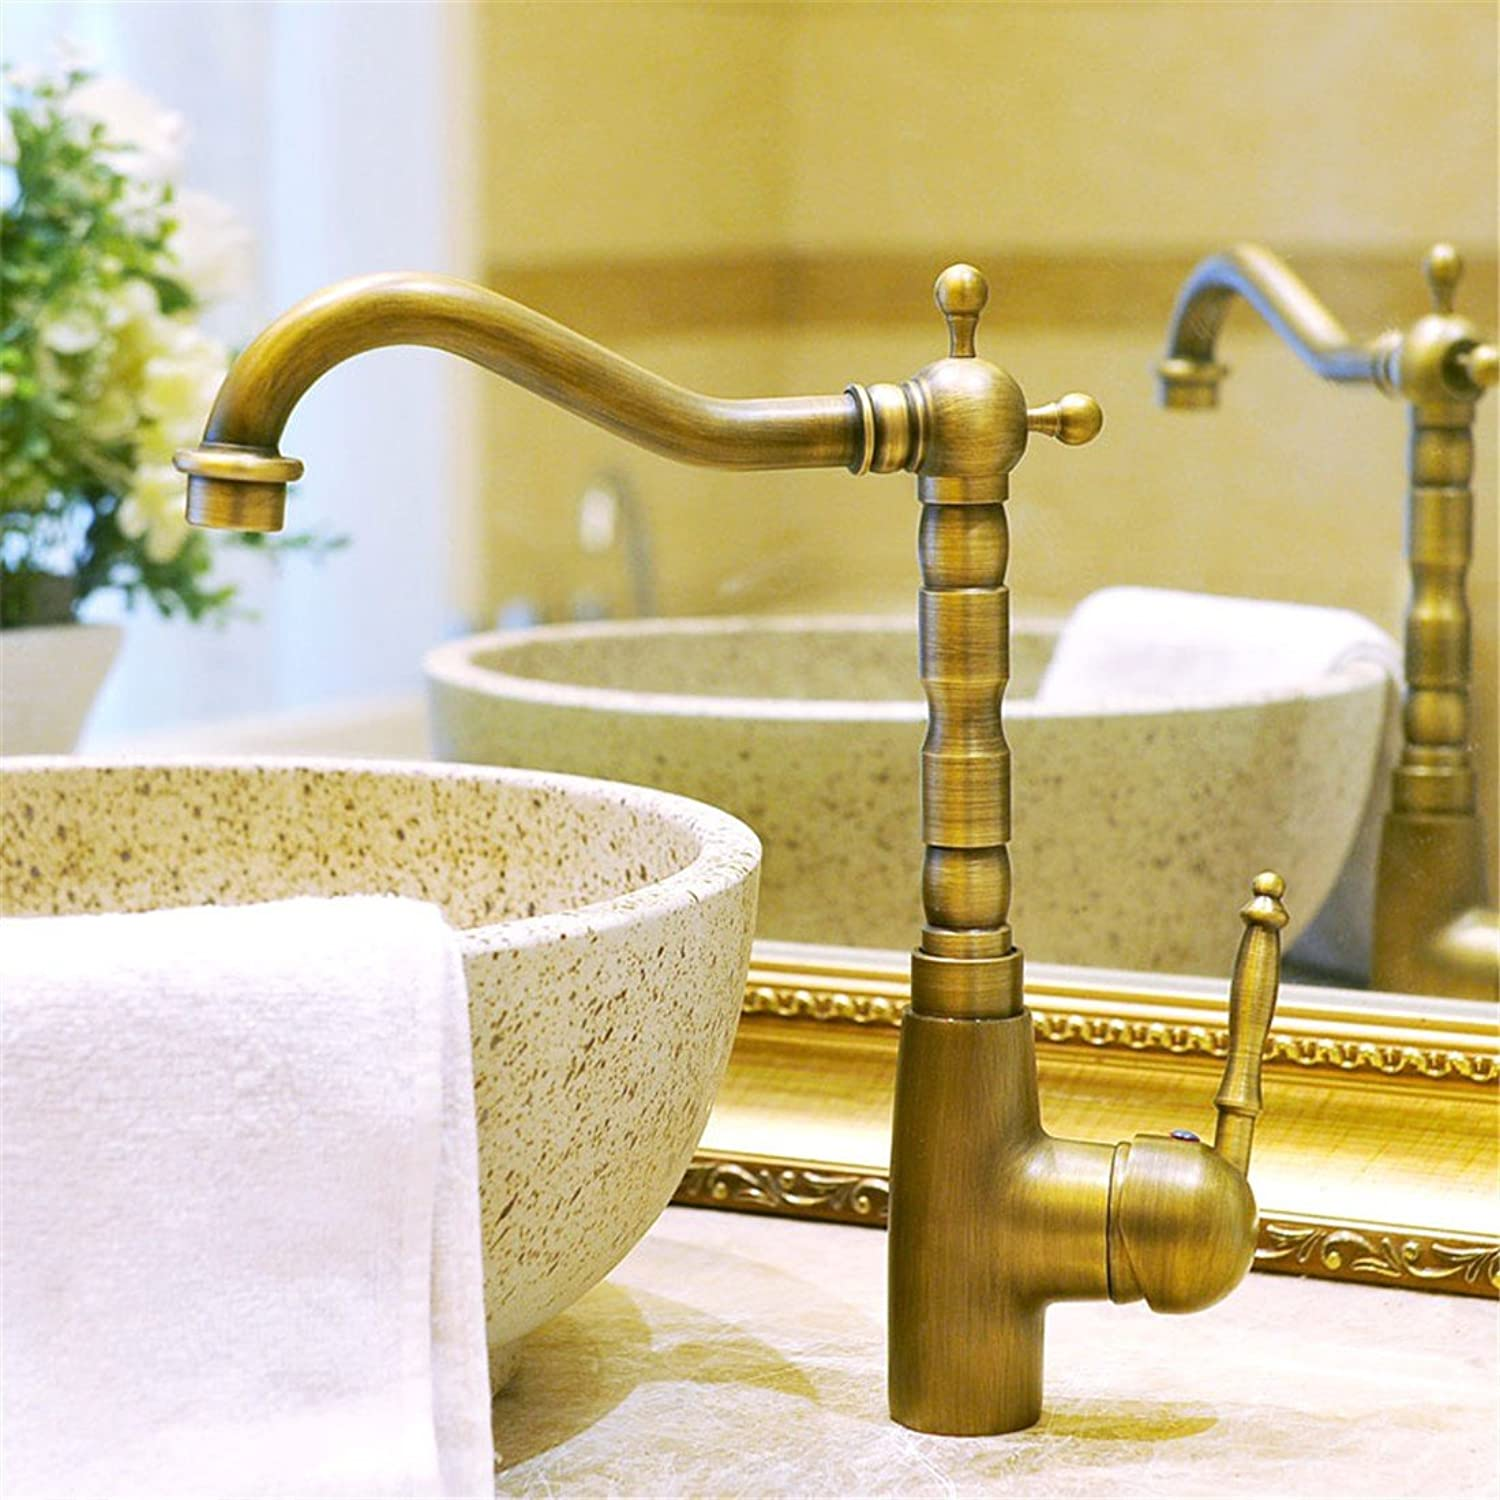 Commercial Single Lever Pull Down Kitchen Sink Faucet Brass Constructed Polished European Pastoral Antique Faucet Antique Faucet Kitchen Faucet 6035